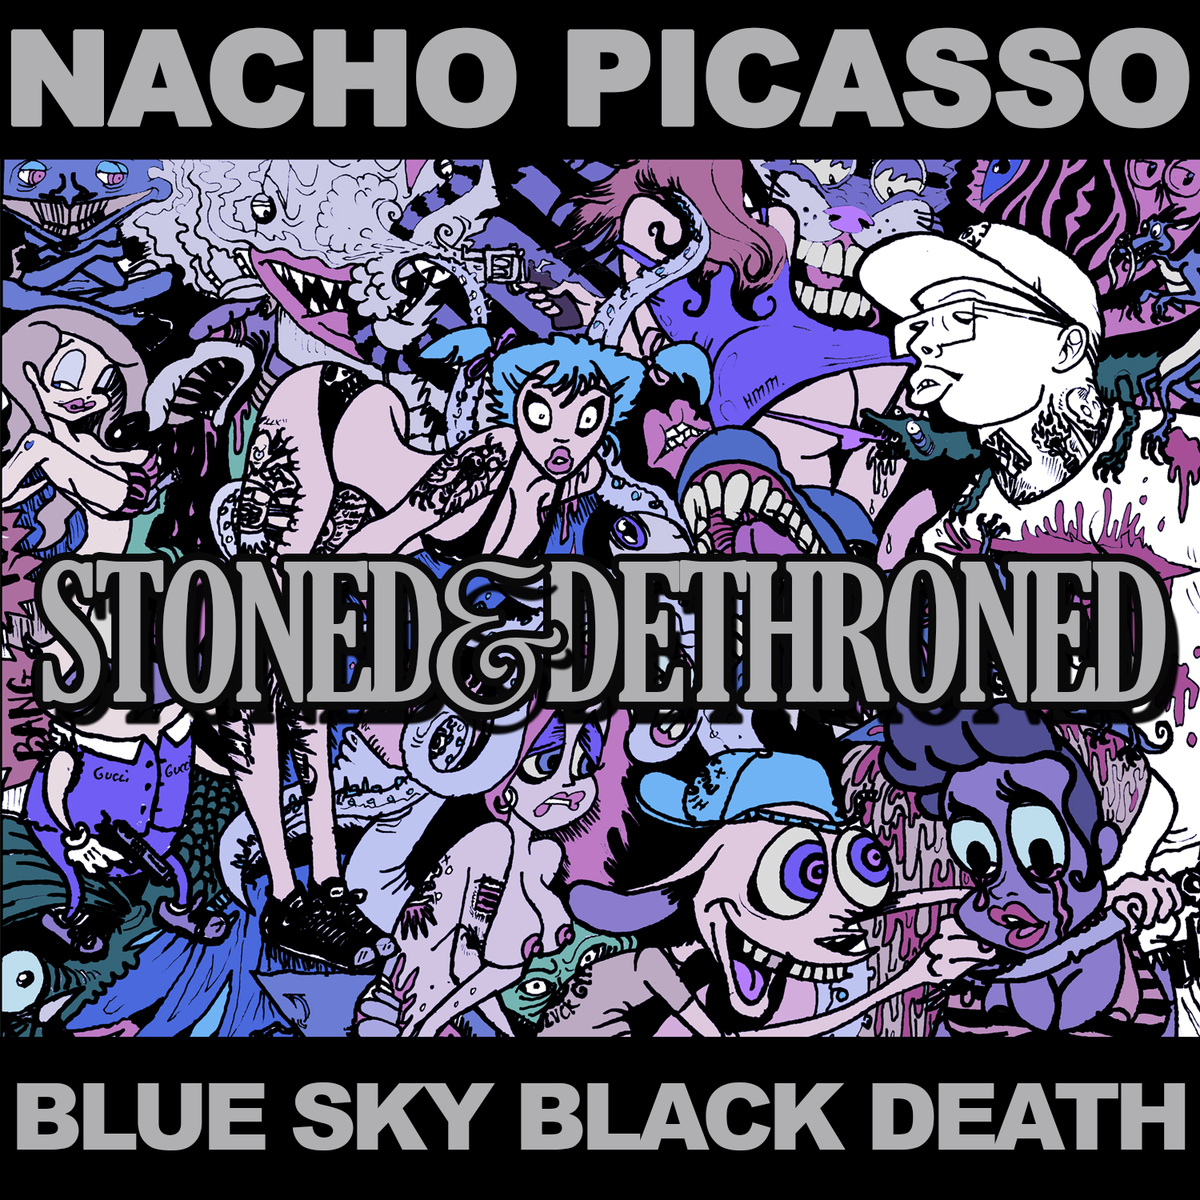 Nacho Picasso's cover art for 'Stoned & Dethroned'